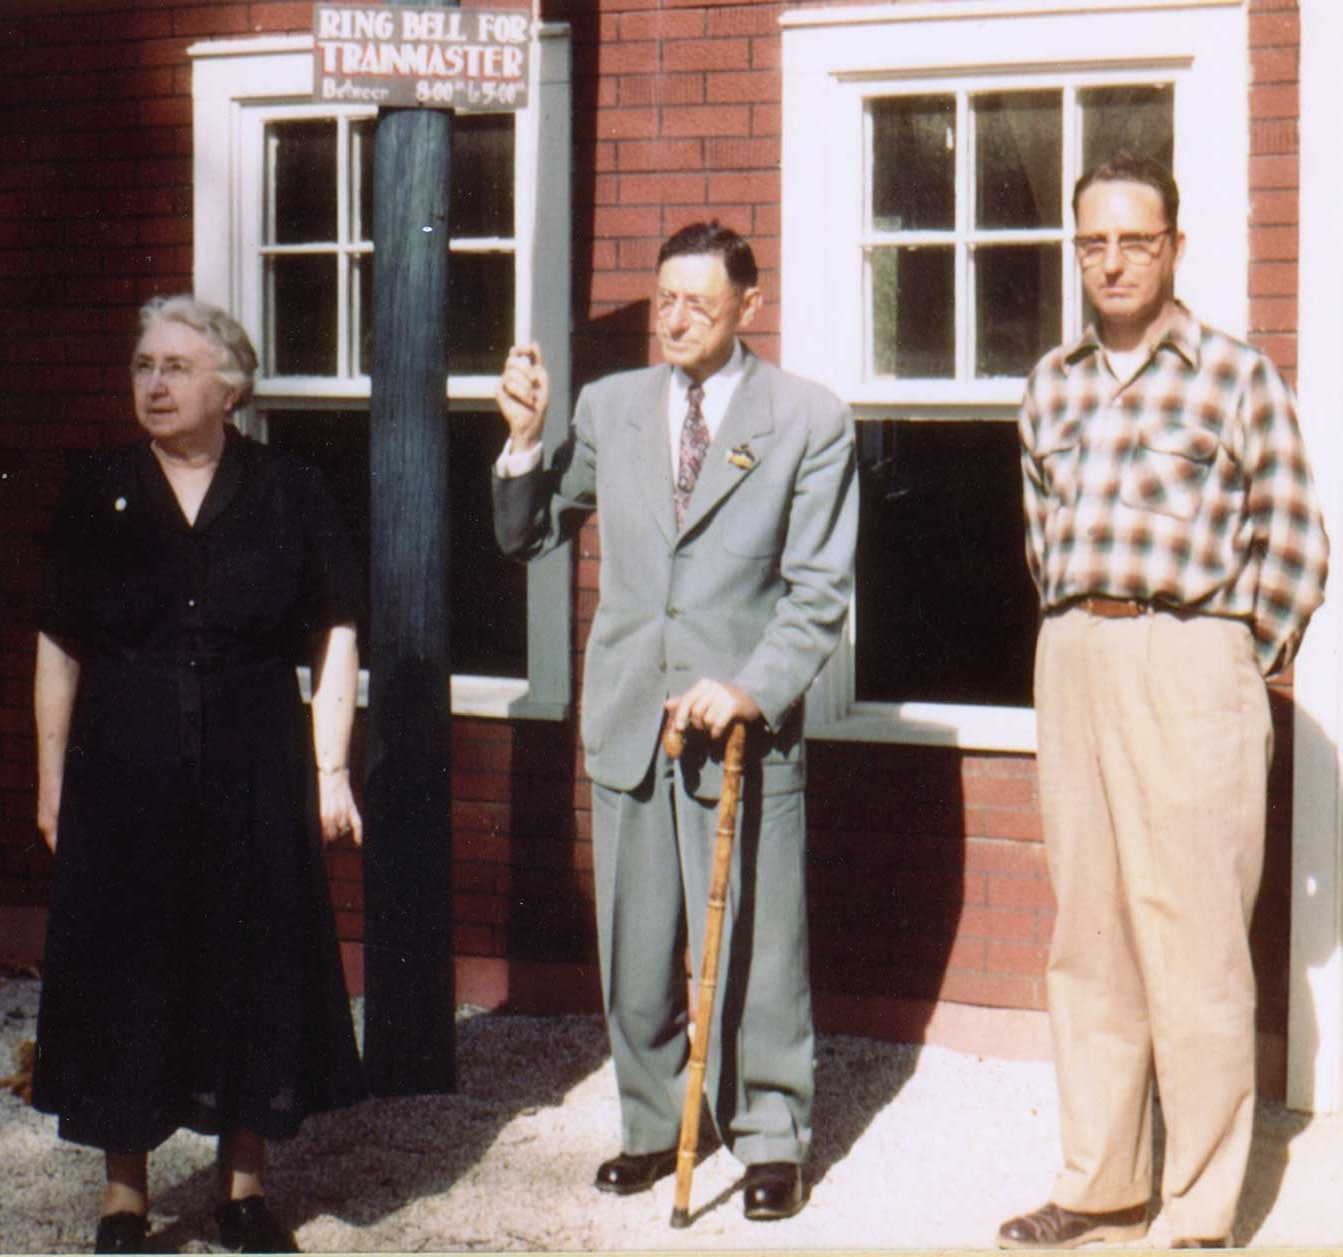 Bill Koch and parents in the 1950s